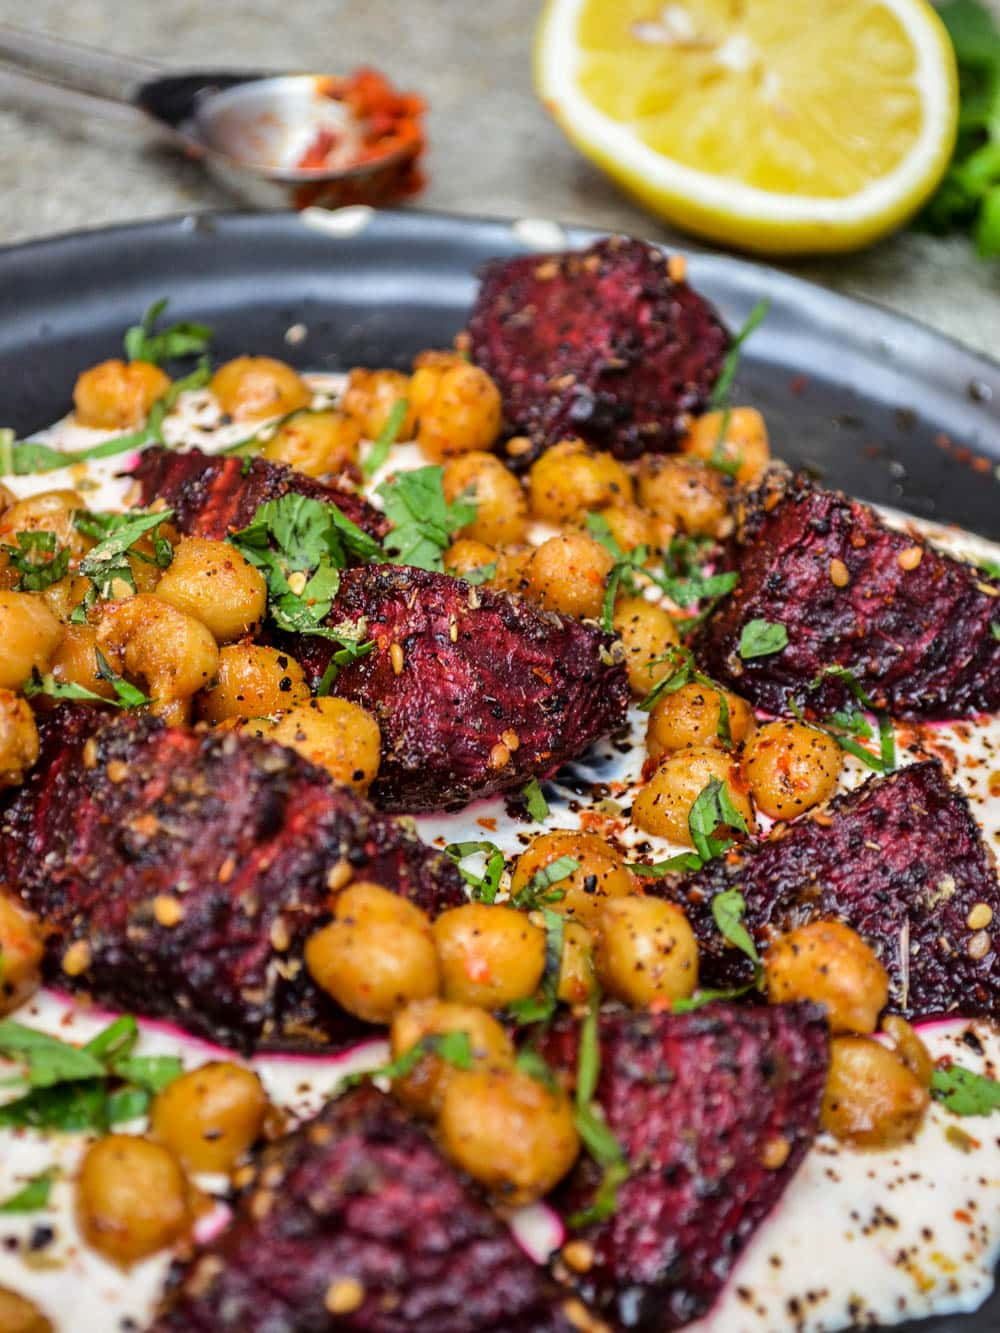 Spiced beetroot & chickpeas with harissa yoghurt